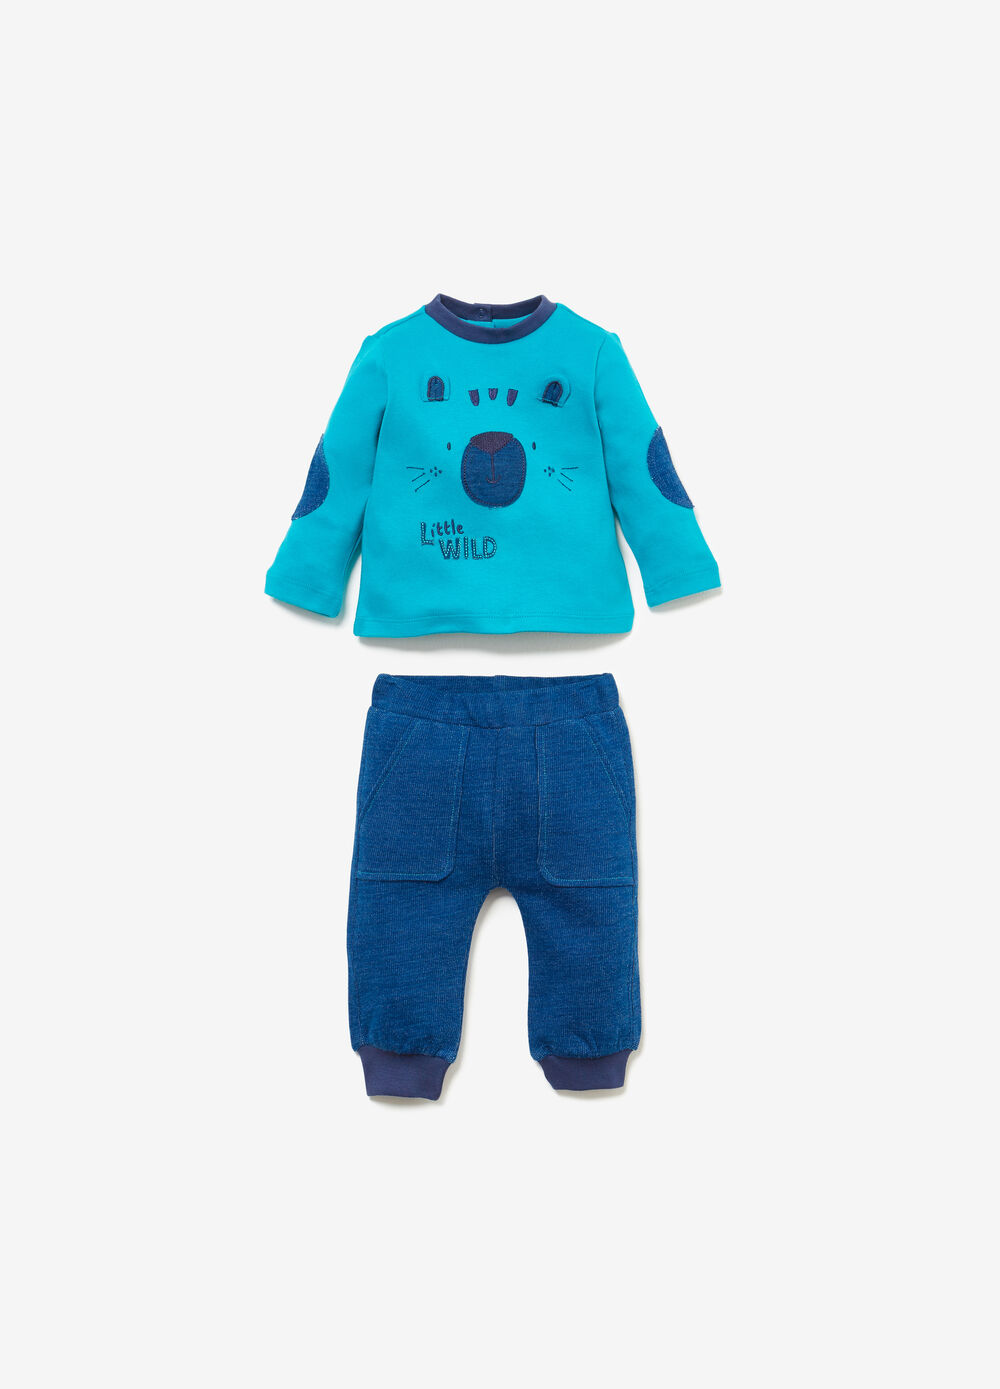 100% cotton outfit with animal patches